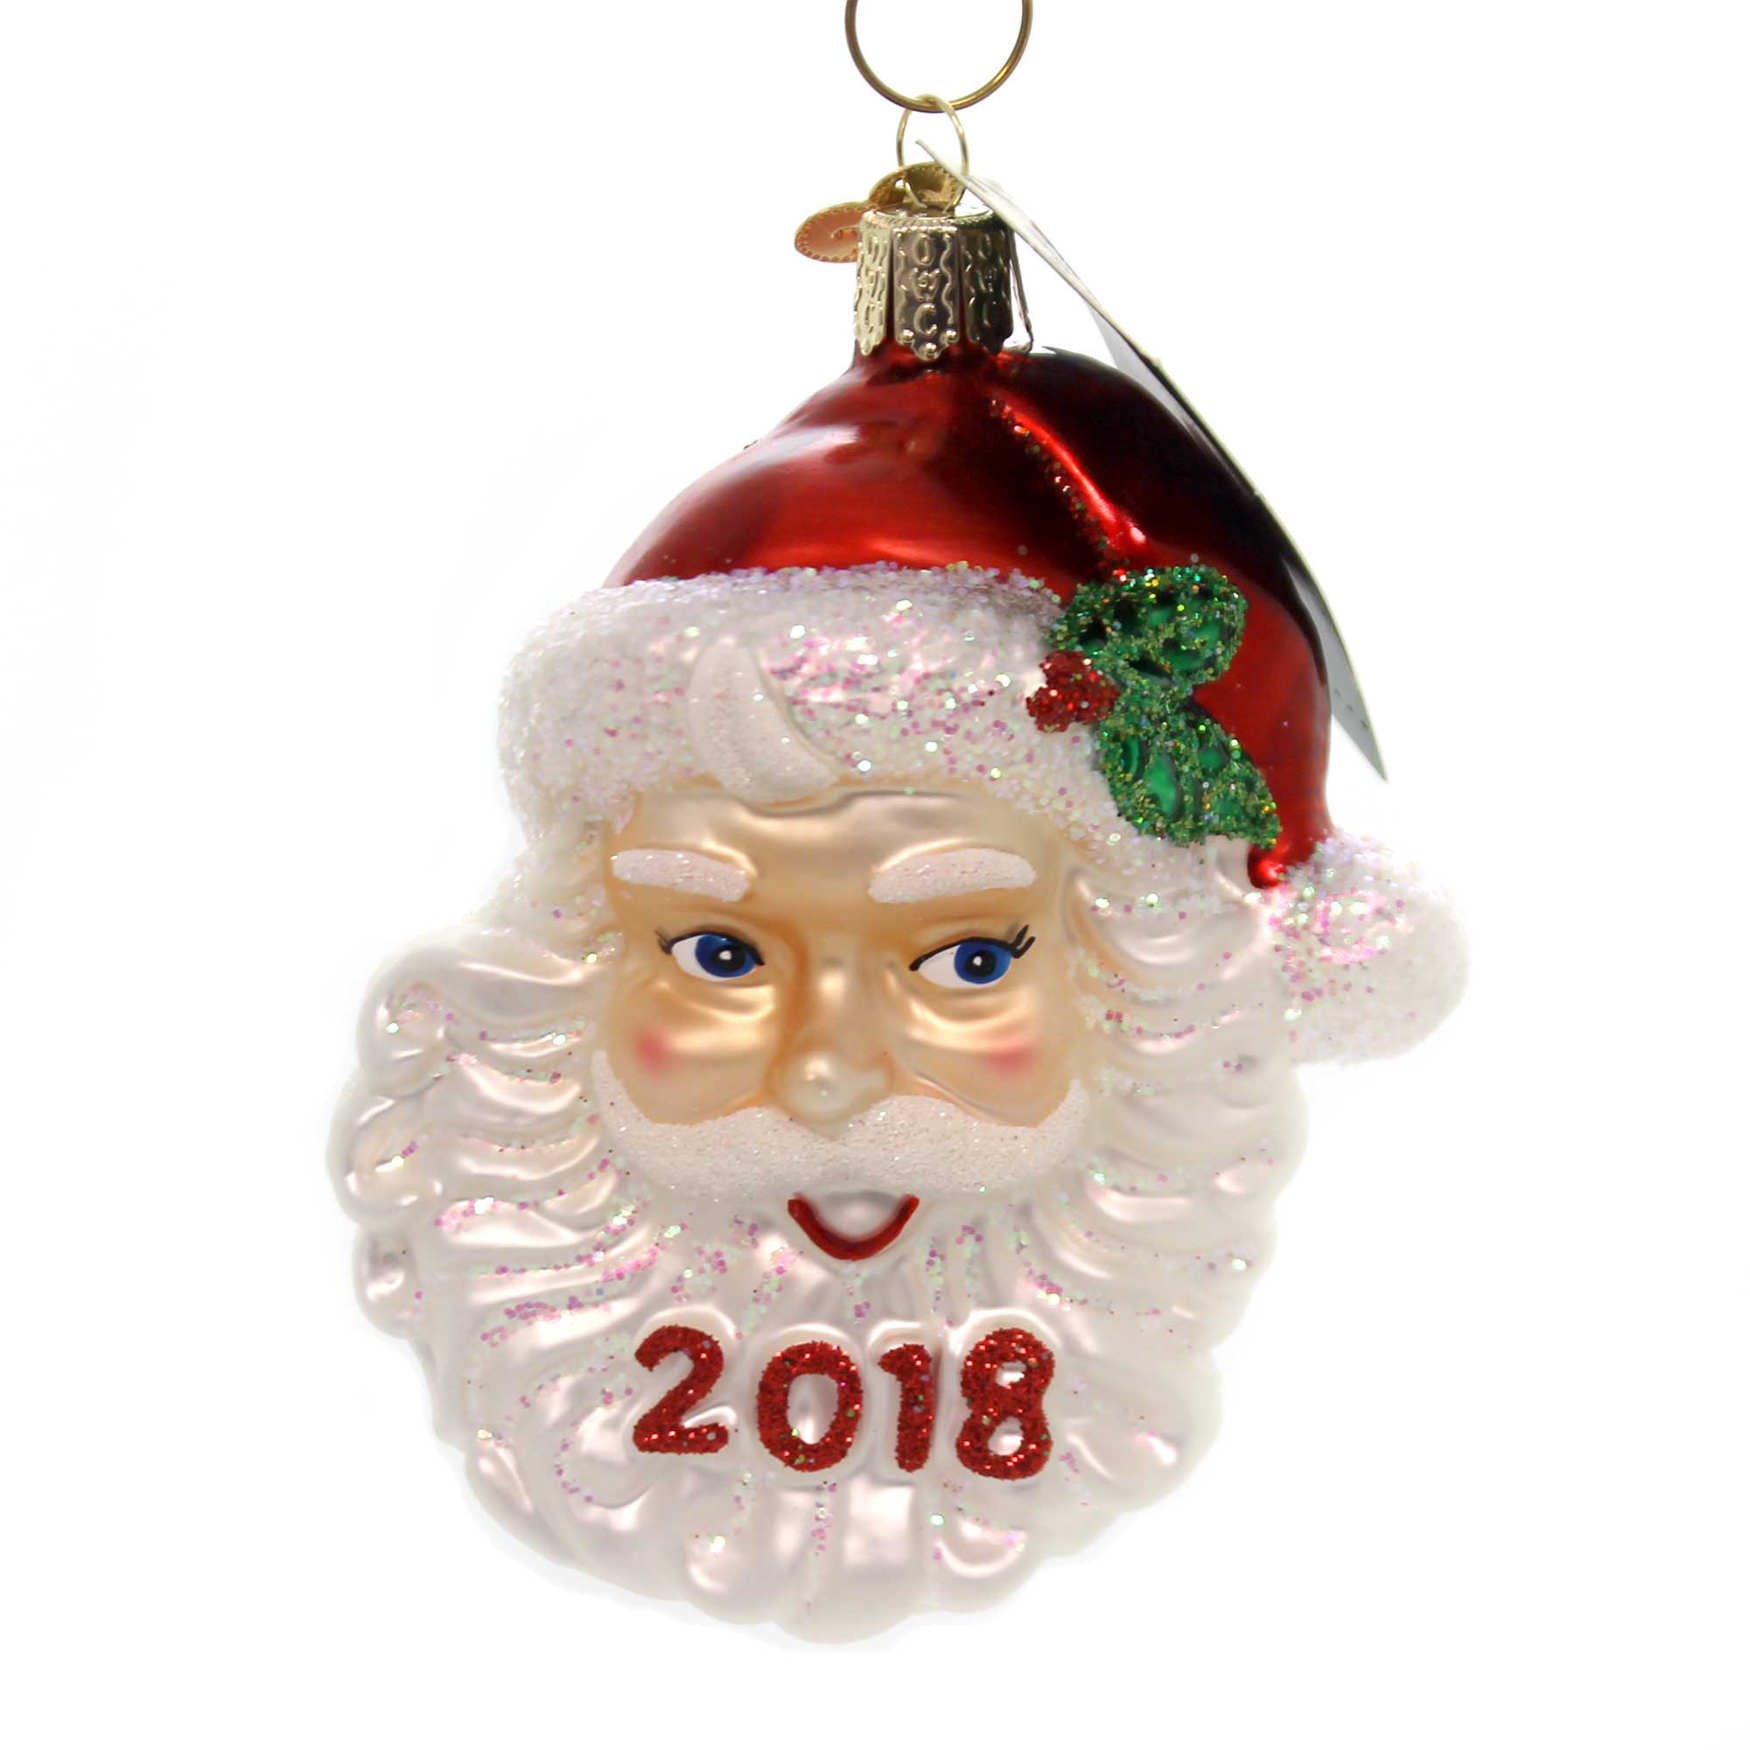 Old World Christmas 2018 NOSTALGIC SANTA Glass St Nick Ornament 40301